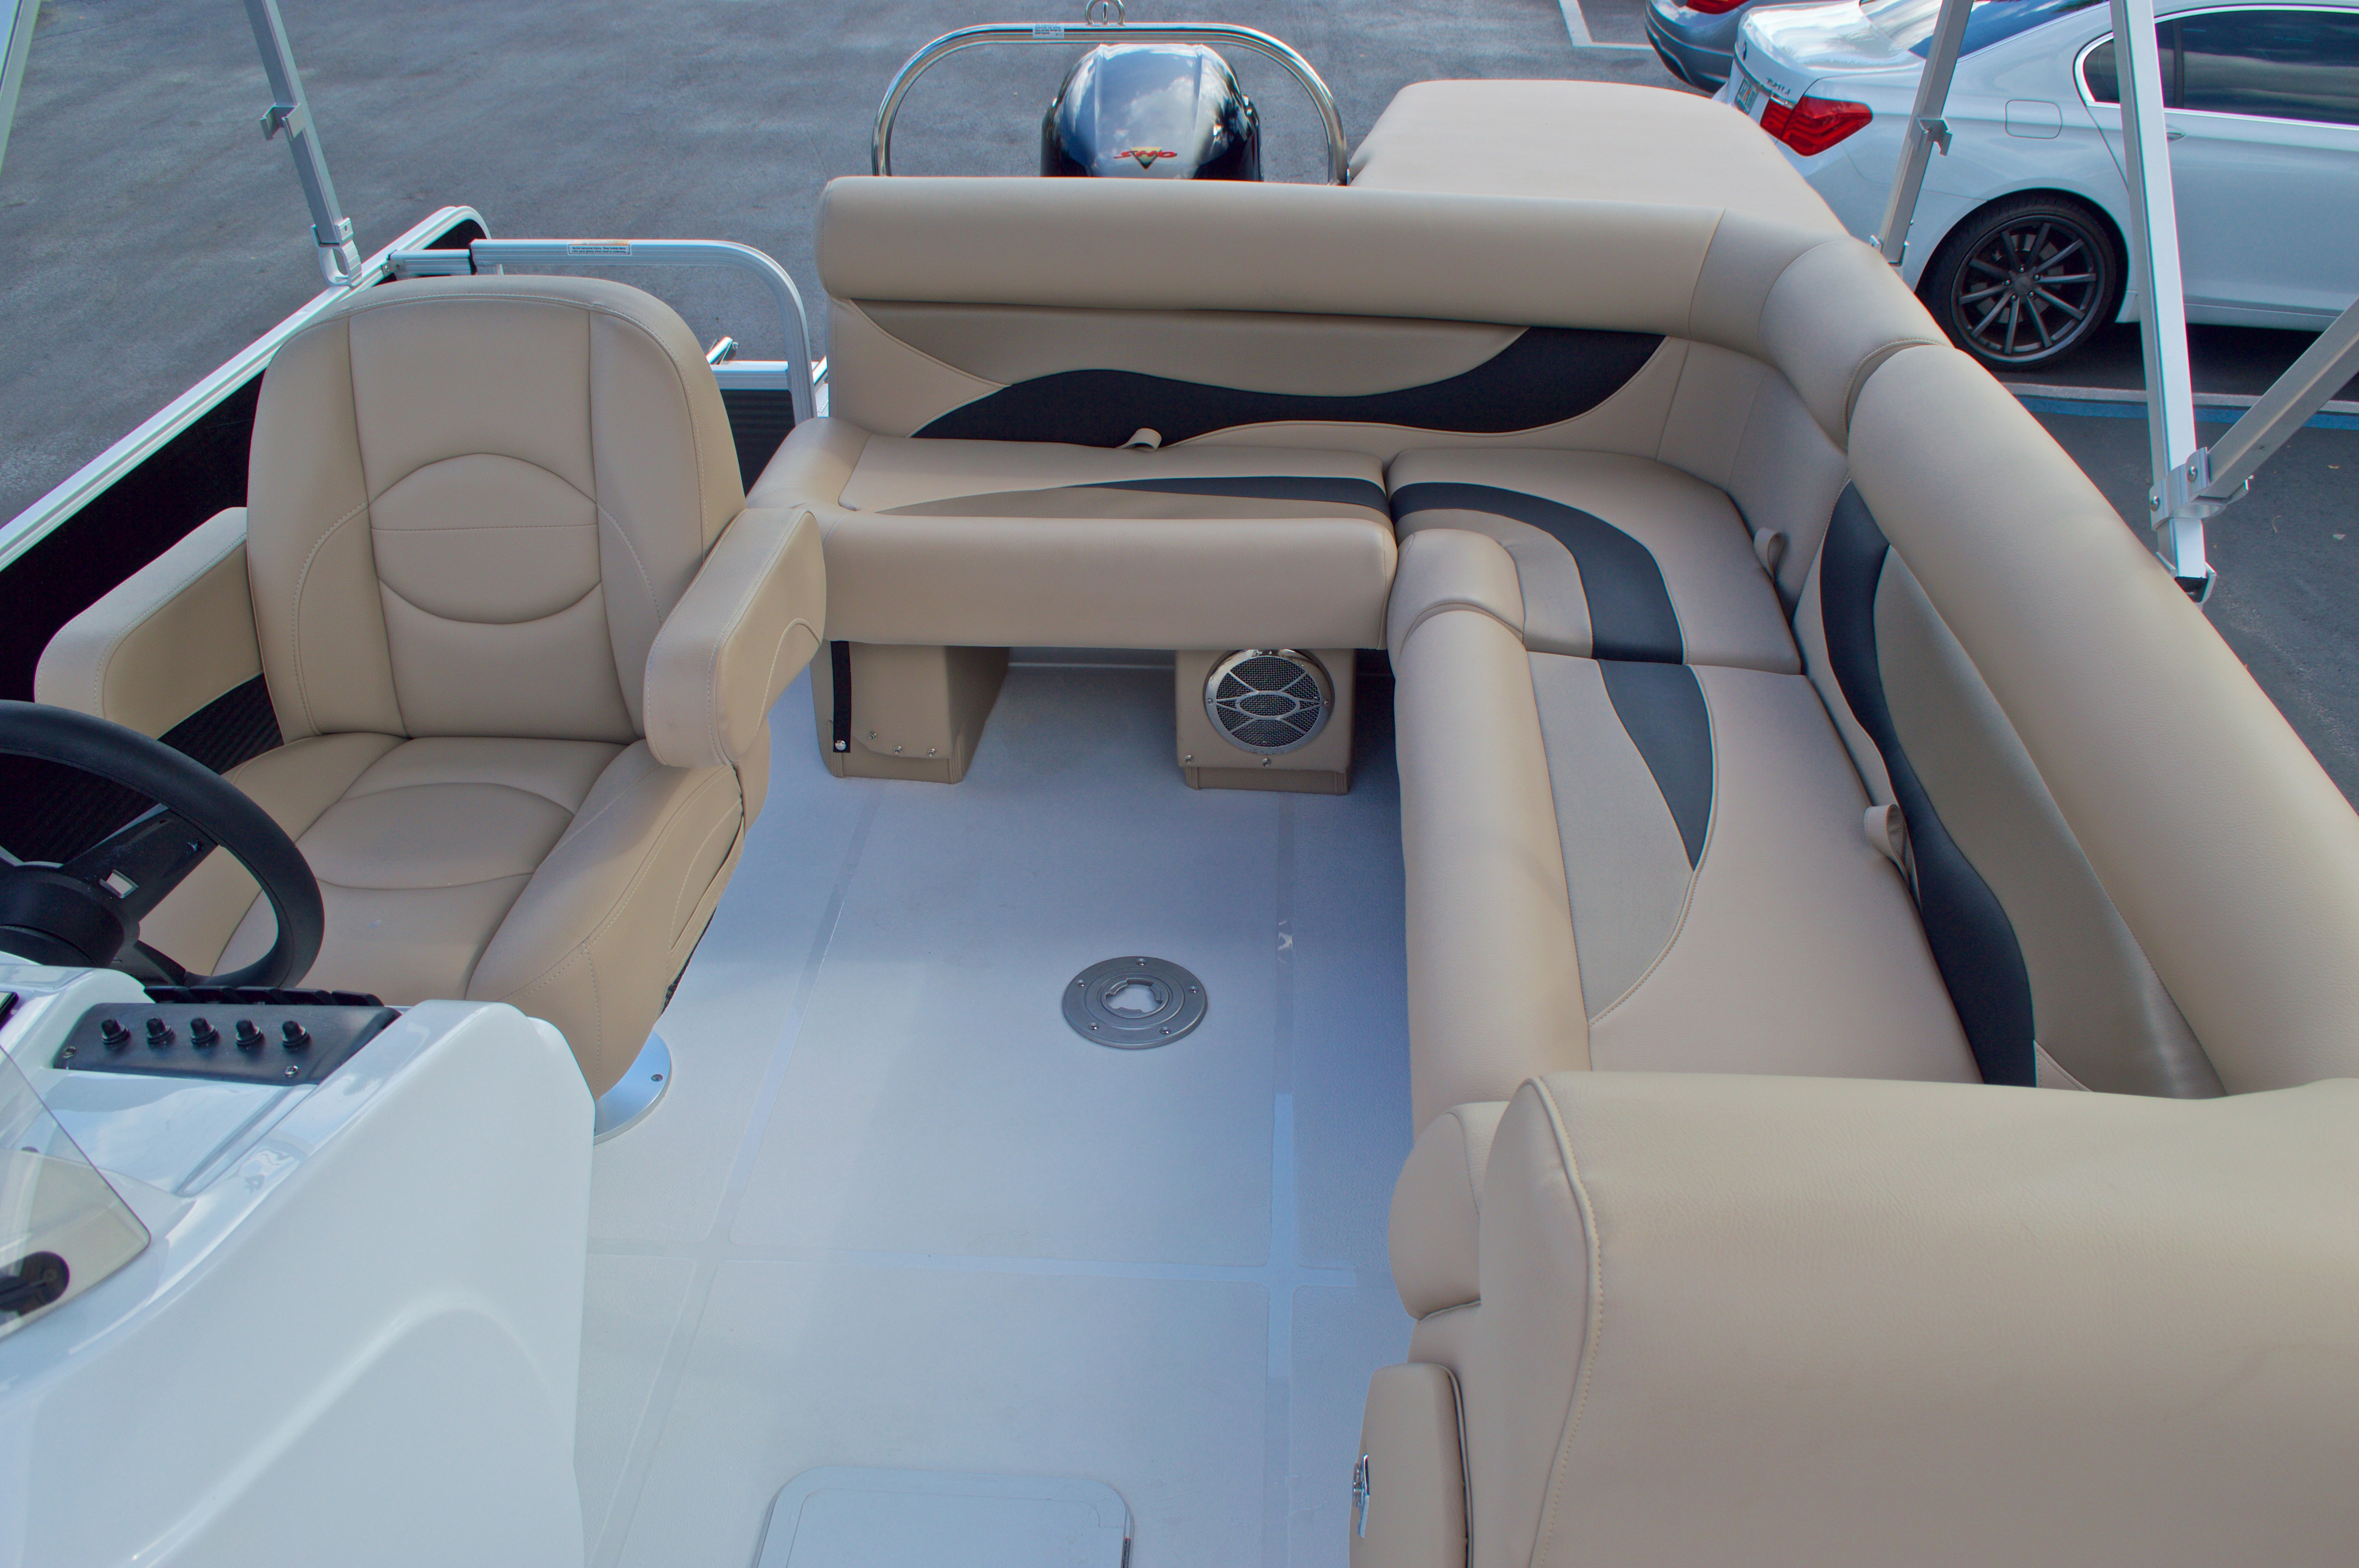 Thumbnail 12 for New 2016 Hurricane Fundeck FD 196 OB boat for sale in West Palm Beach, FL